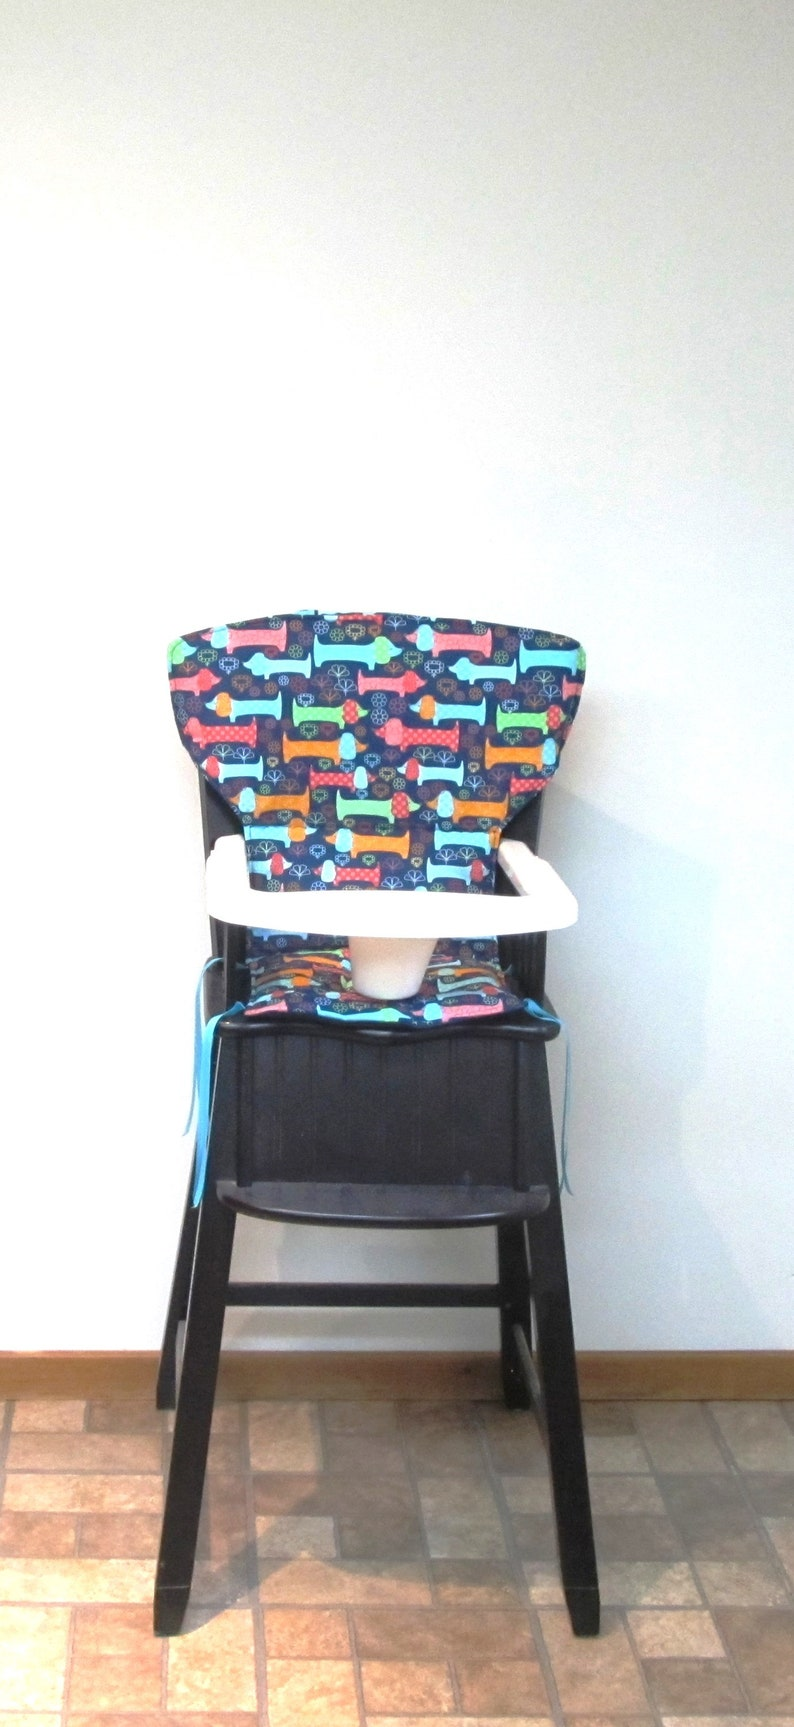 Newport Style Wooden Eddie Bauer Wood High Chair Cover Chair Replacement Seat Pad Kids Feeding Chair Protector Doxie Fun